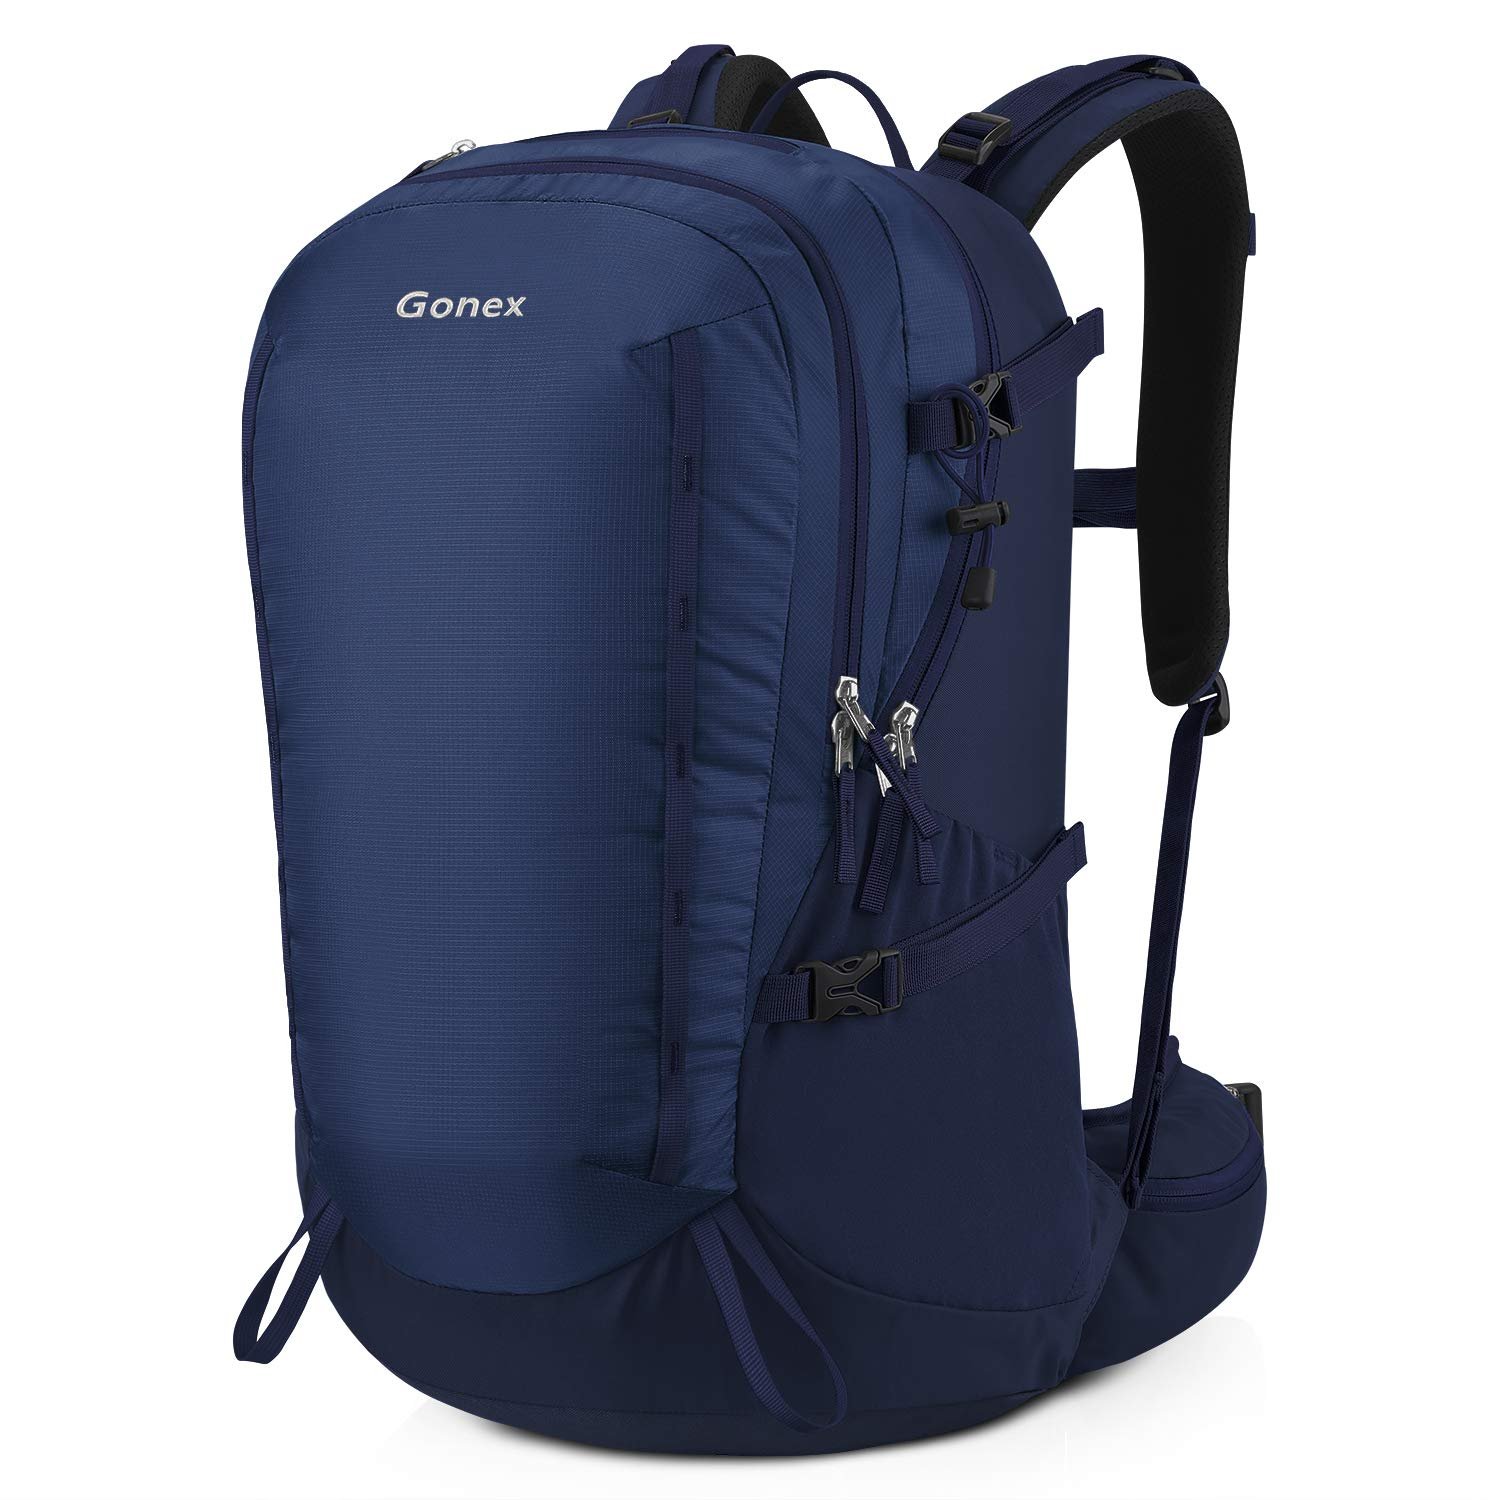 Gonex 40L Hiking Backpack, Outdoor Travel Backpack with Rain Cover for Climbing, Camping, Travelling Blue by Gonex